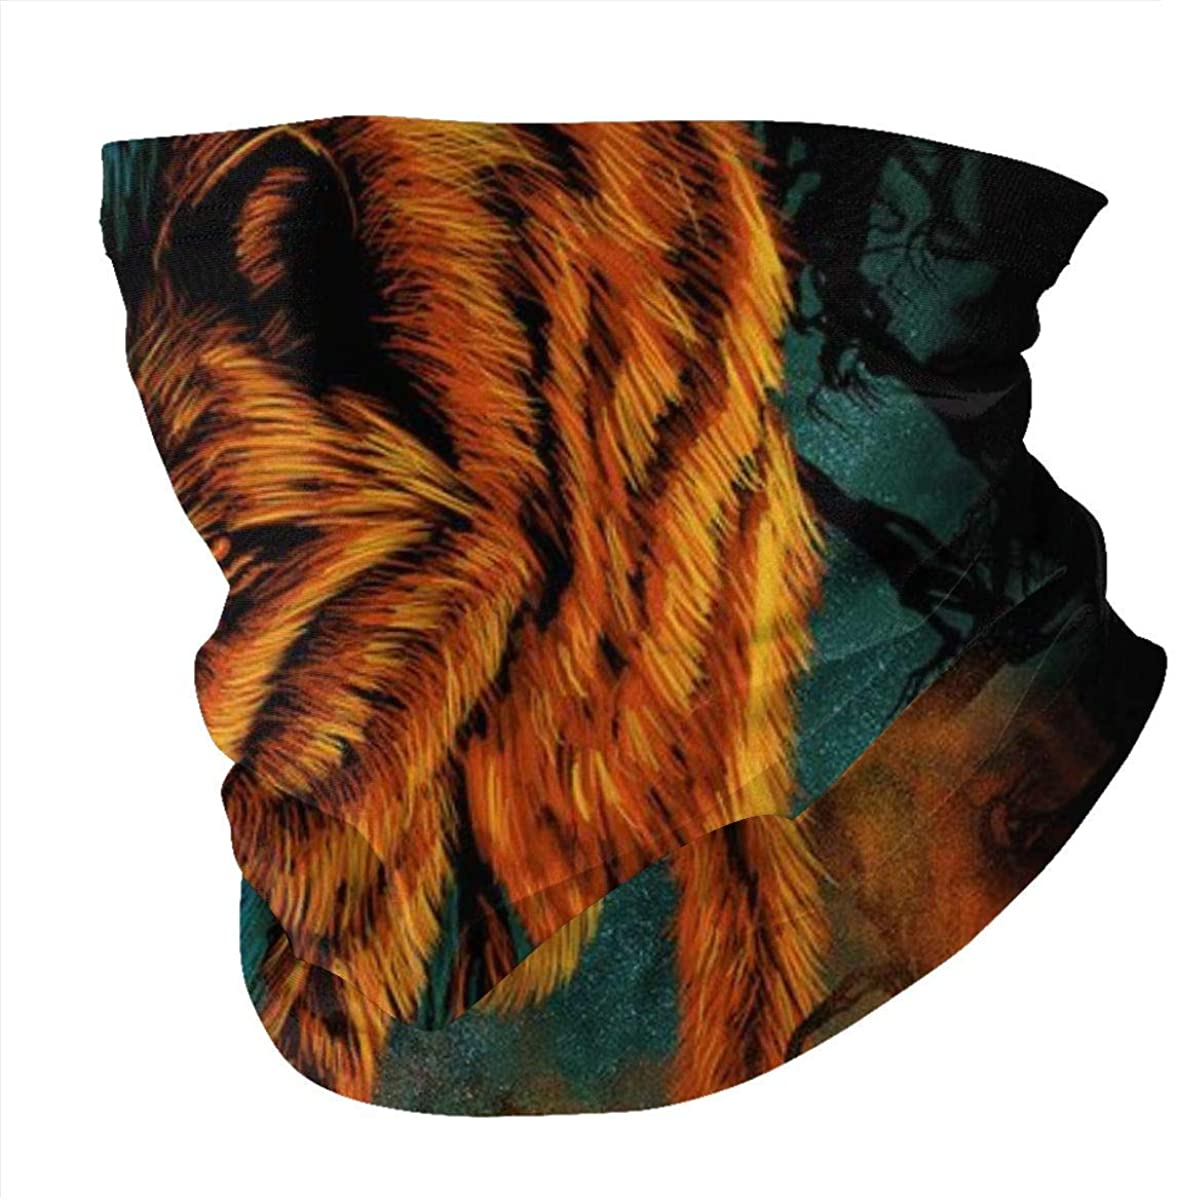 BOKUTT Fire and Ice Wolf Variety face Towel Face Bandana Scarf Ear Loops Men Women Face Rave Bandana Neck Gaiters for Outdoor,Sport,Festivals